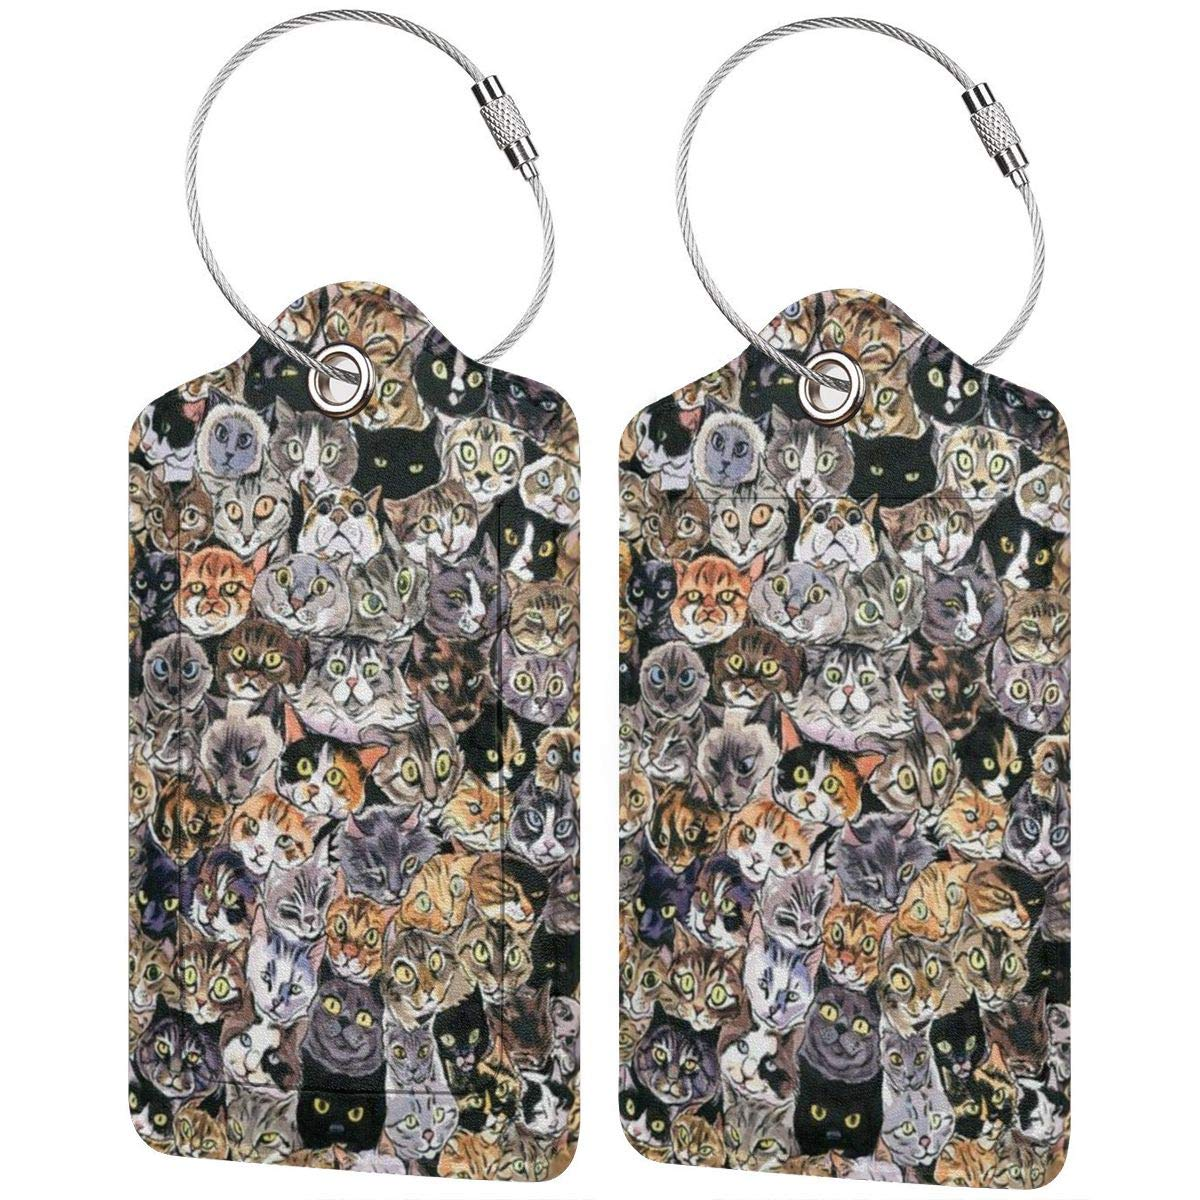 Cat Printing Luggage Tags With Full Back Privacy Cover W//Steel Loops